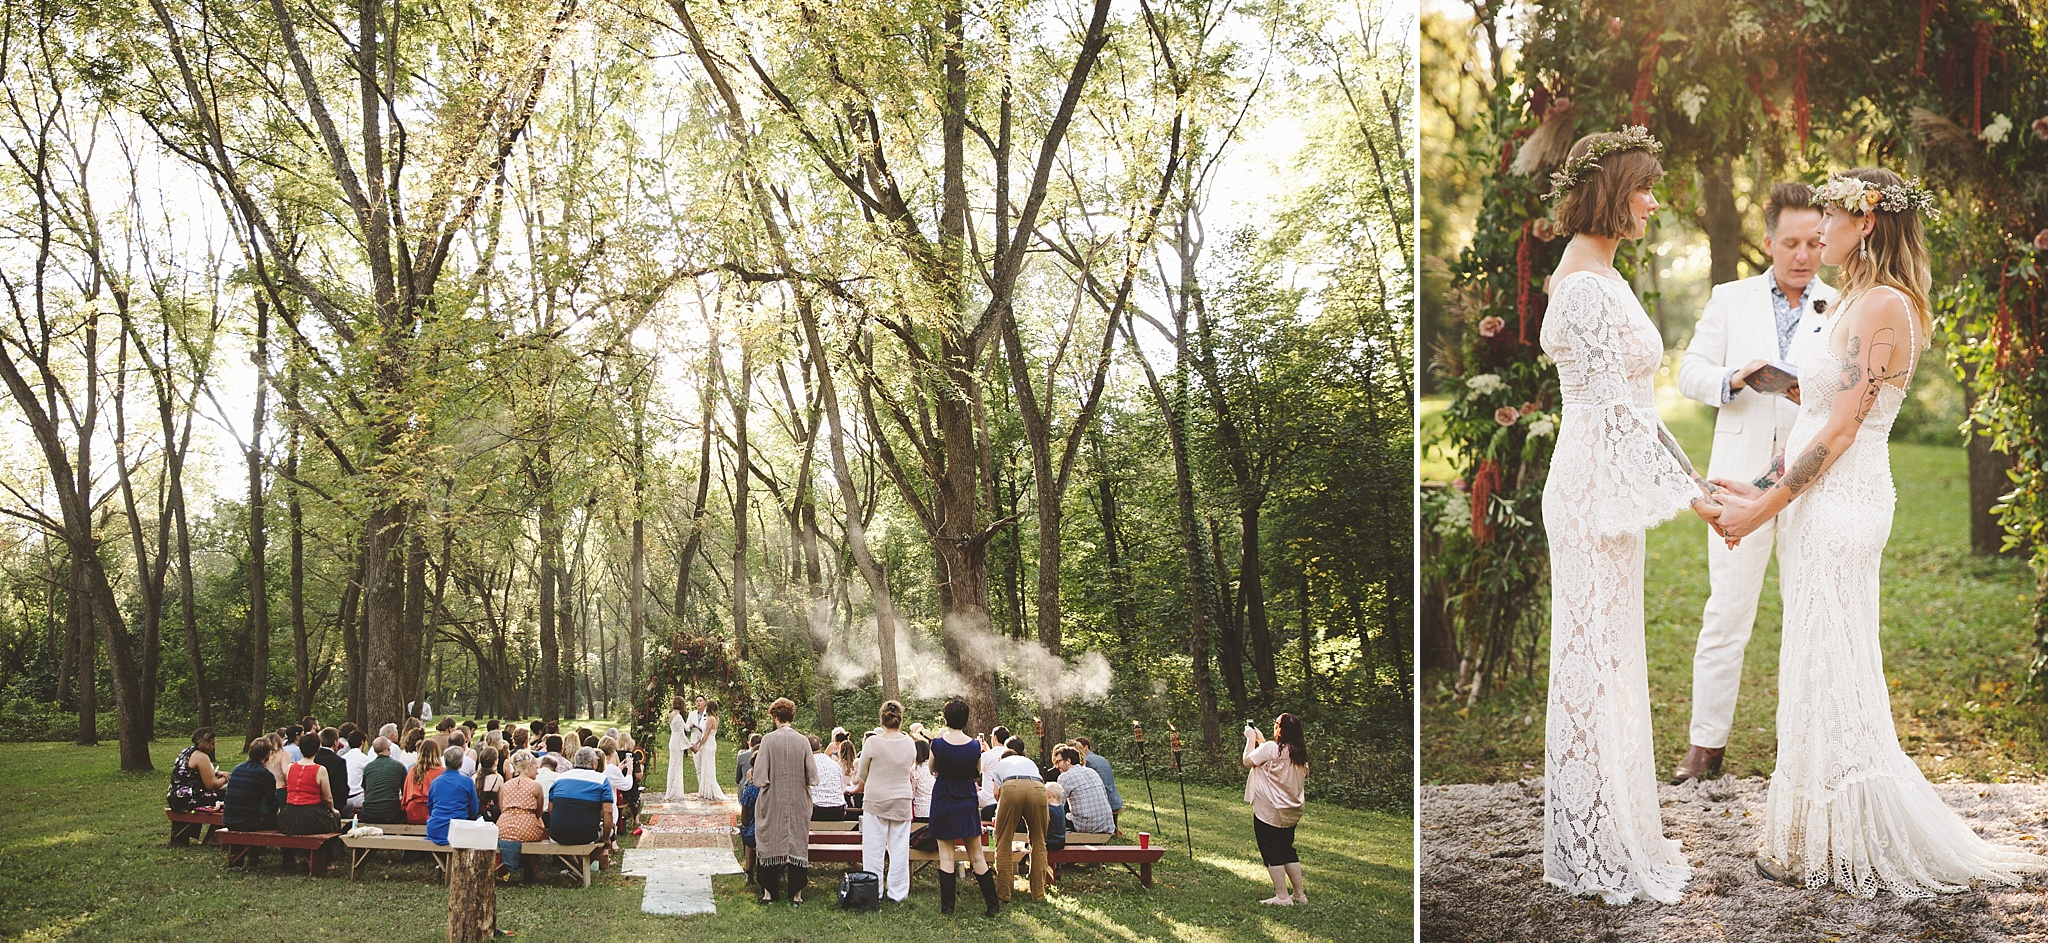 Summer Camp Wedding at White Eagle Camp